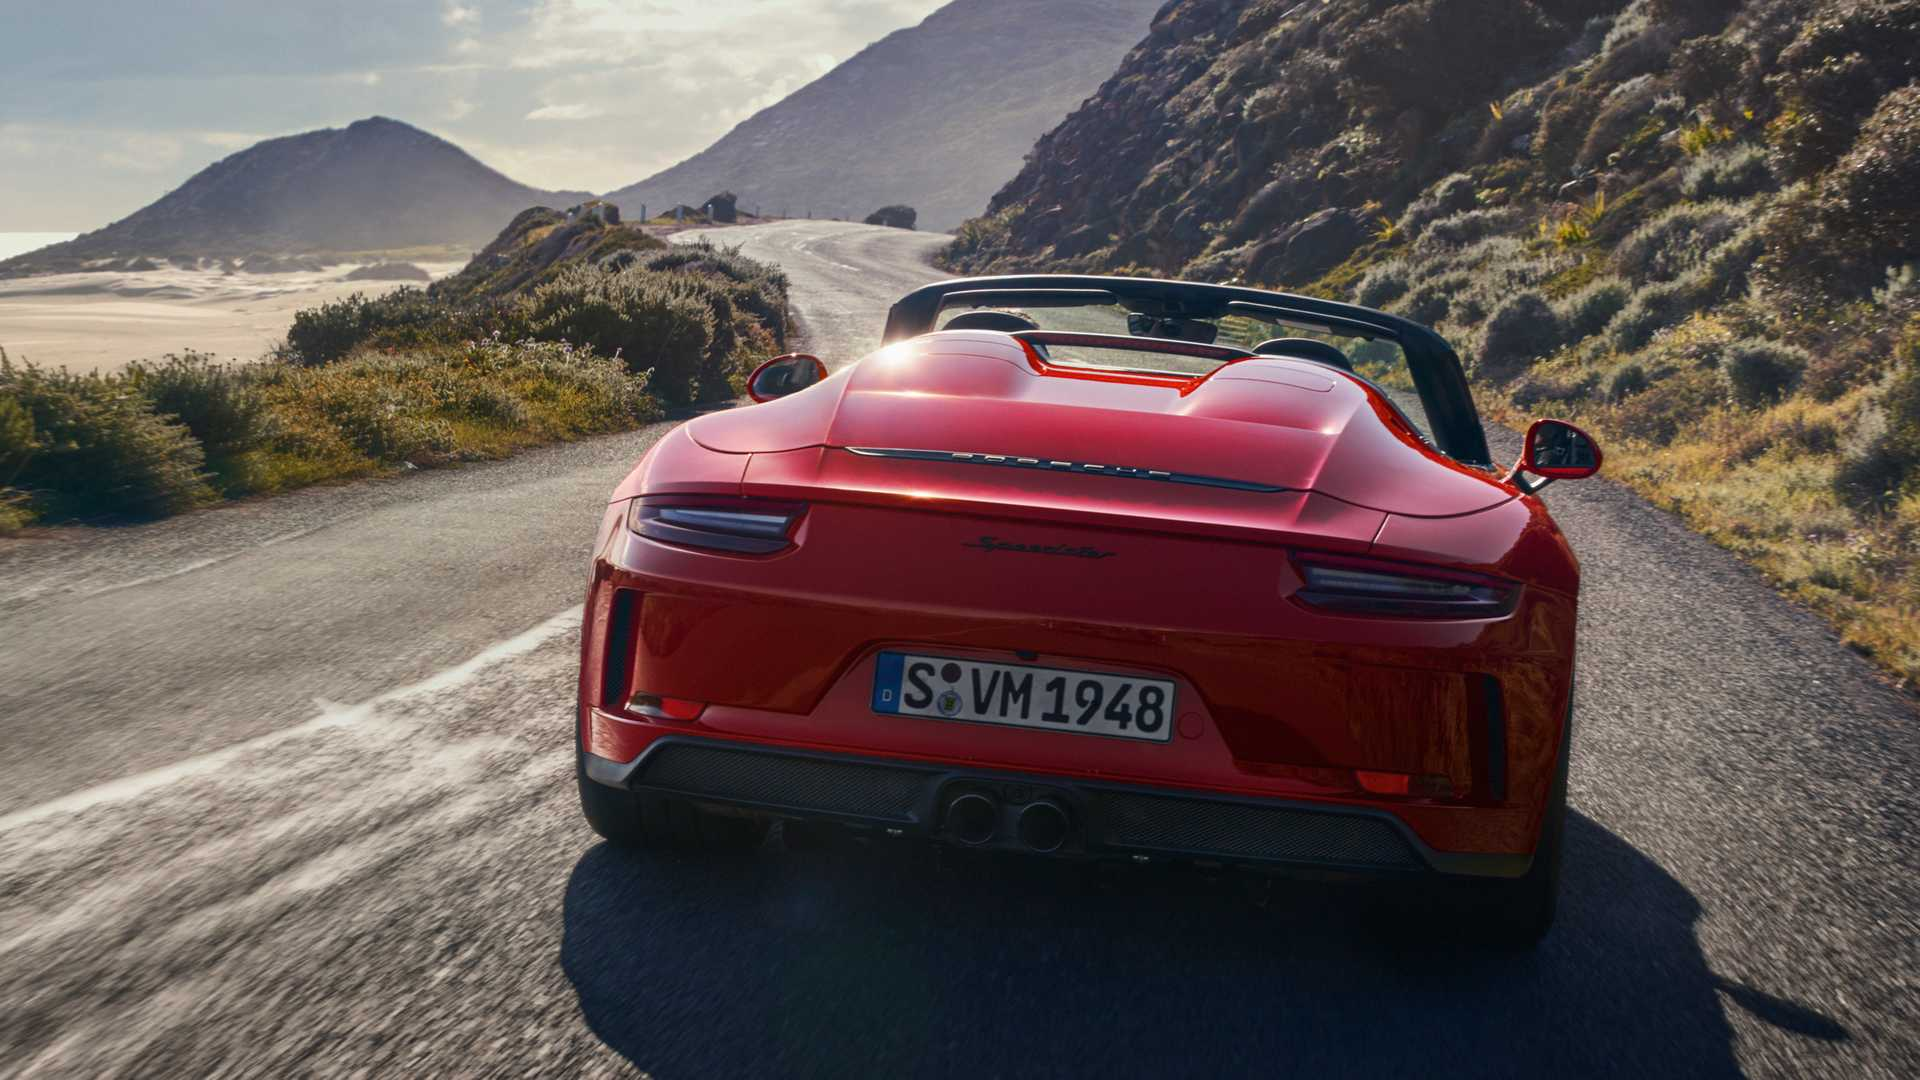 Porsche 911 Speedster debuts - 1,948 units only